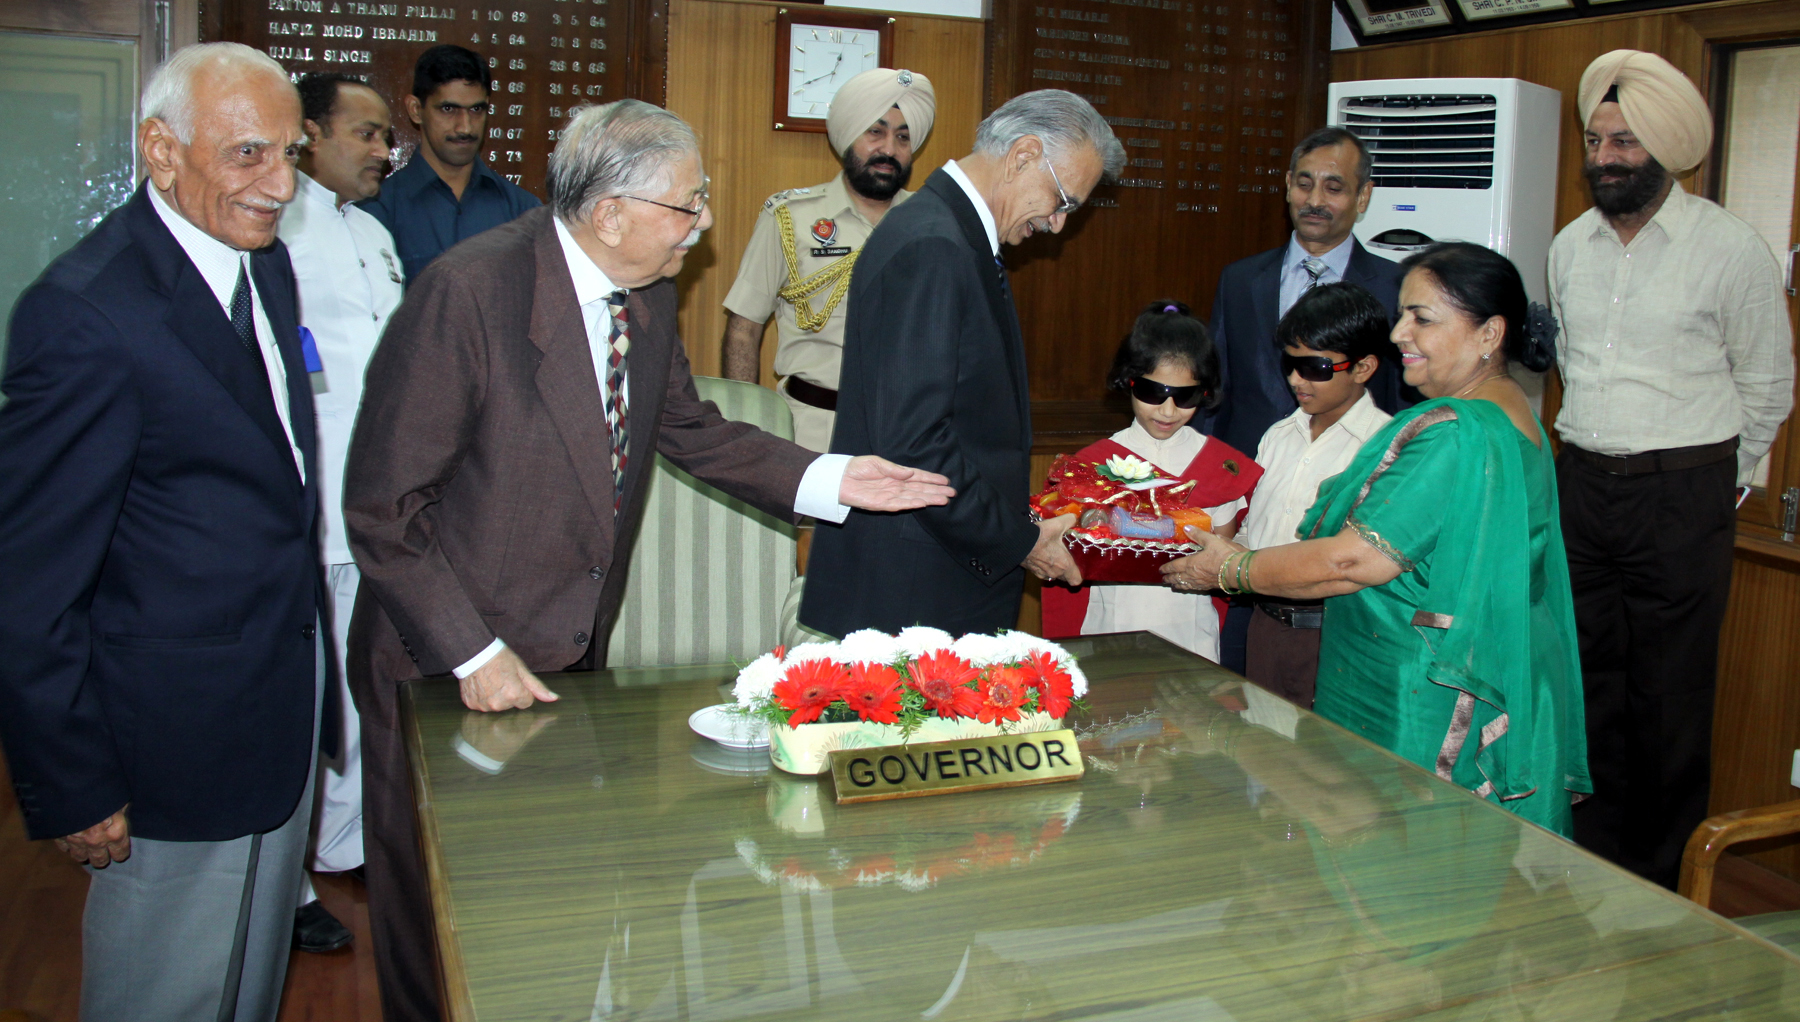 Students of Blind Institute Sector 26 Chandigarh presenting designer candles to Punjab Governor and Administrator UT Chandigarh Mr. Shivraj V. Patil at Punjab Raj Bhavan on 21.10.2014.